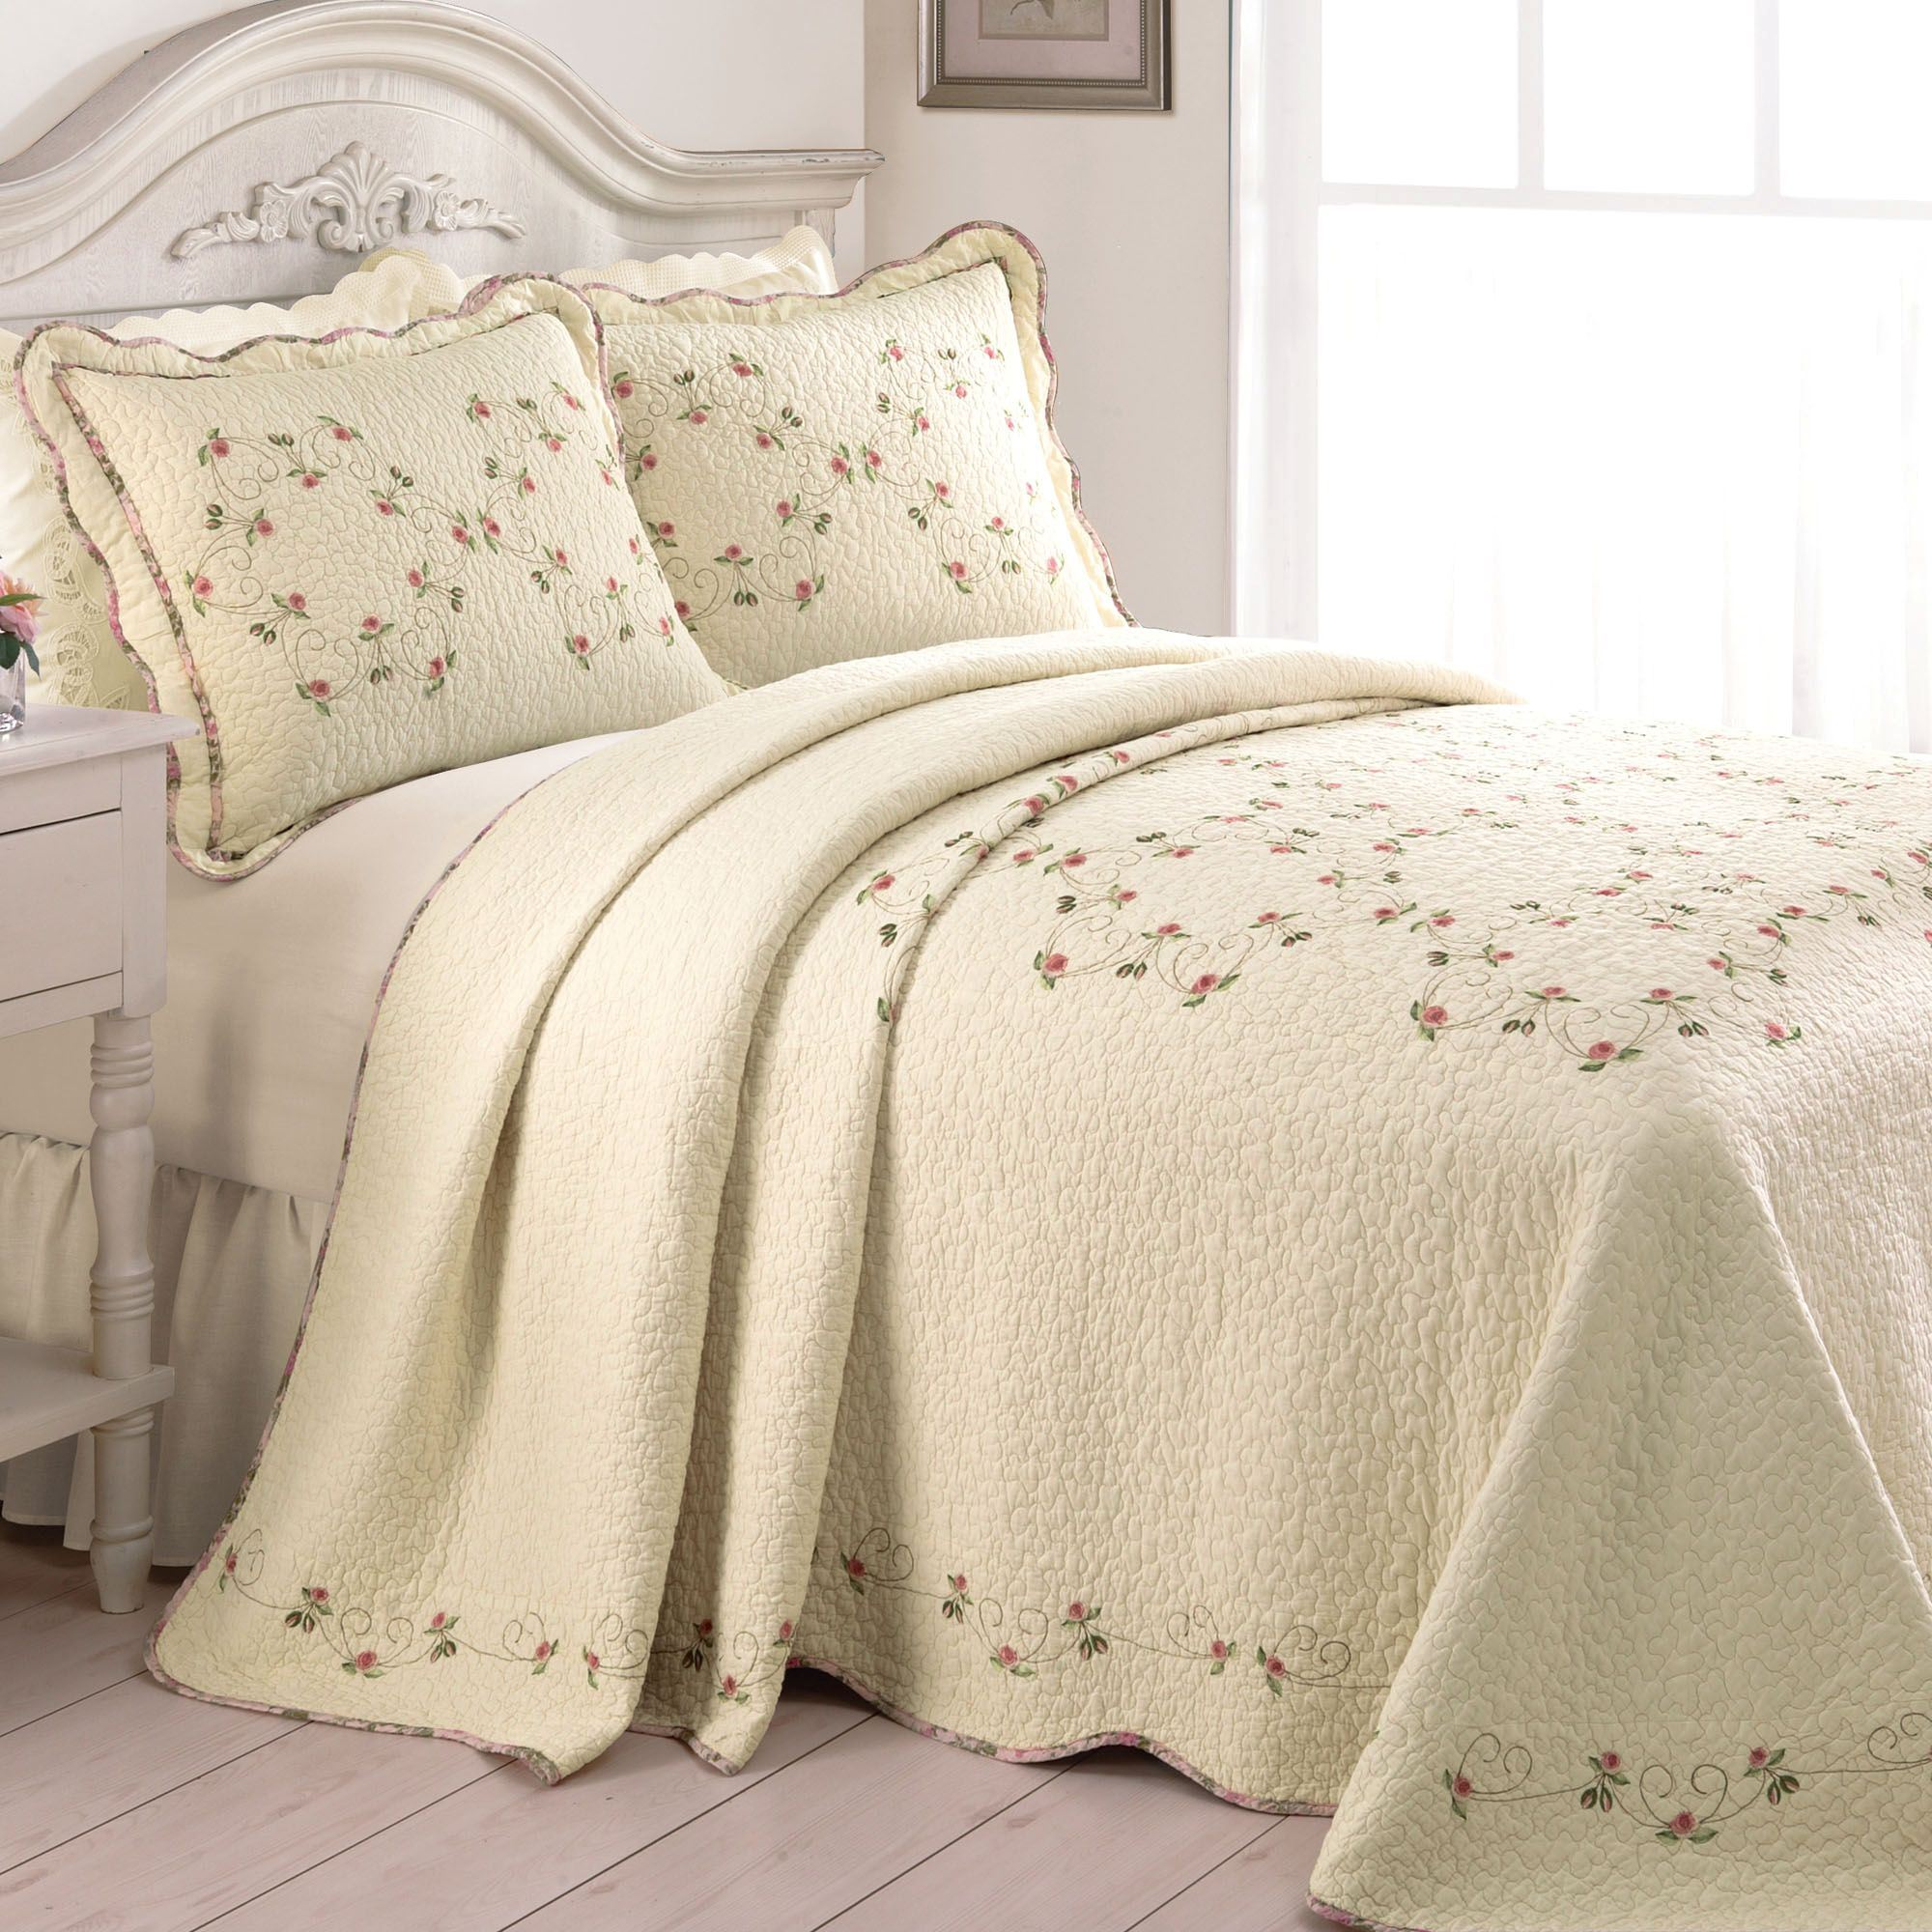 quilted microplush set inc home quilt bed bedspread spreads bnf supersoft bedspreads shop